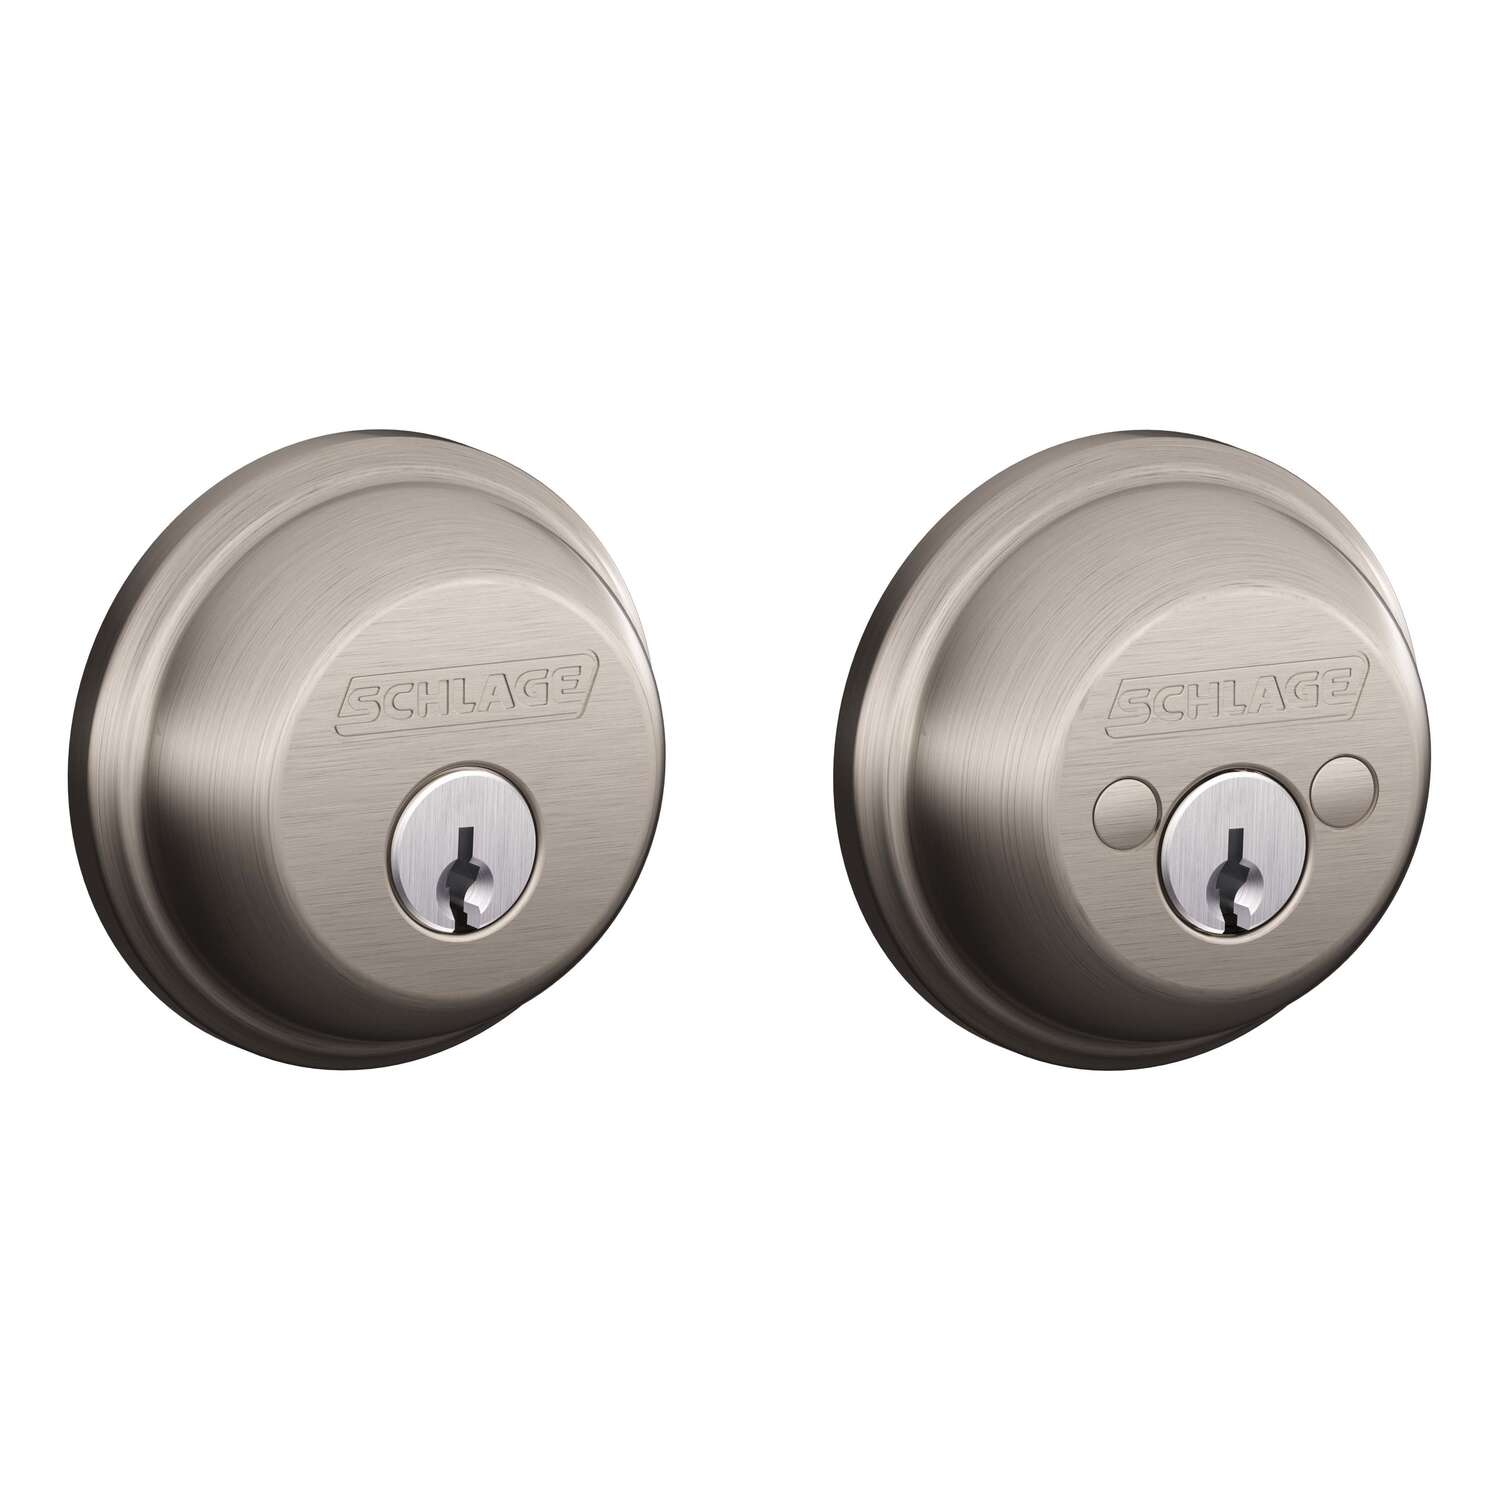 Schlage Satin Nickel Brass Double Cylinder Deadbolt